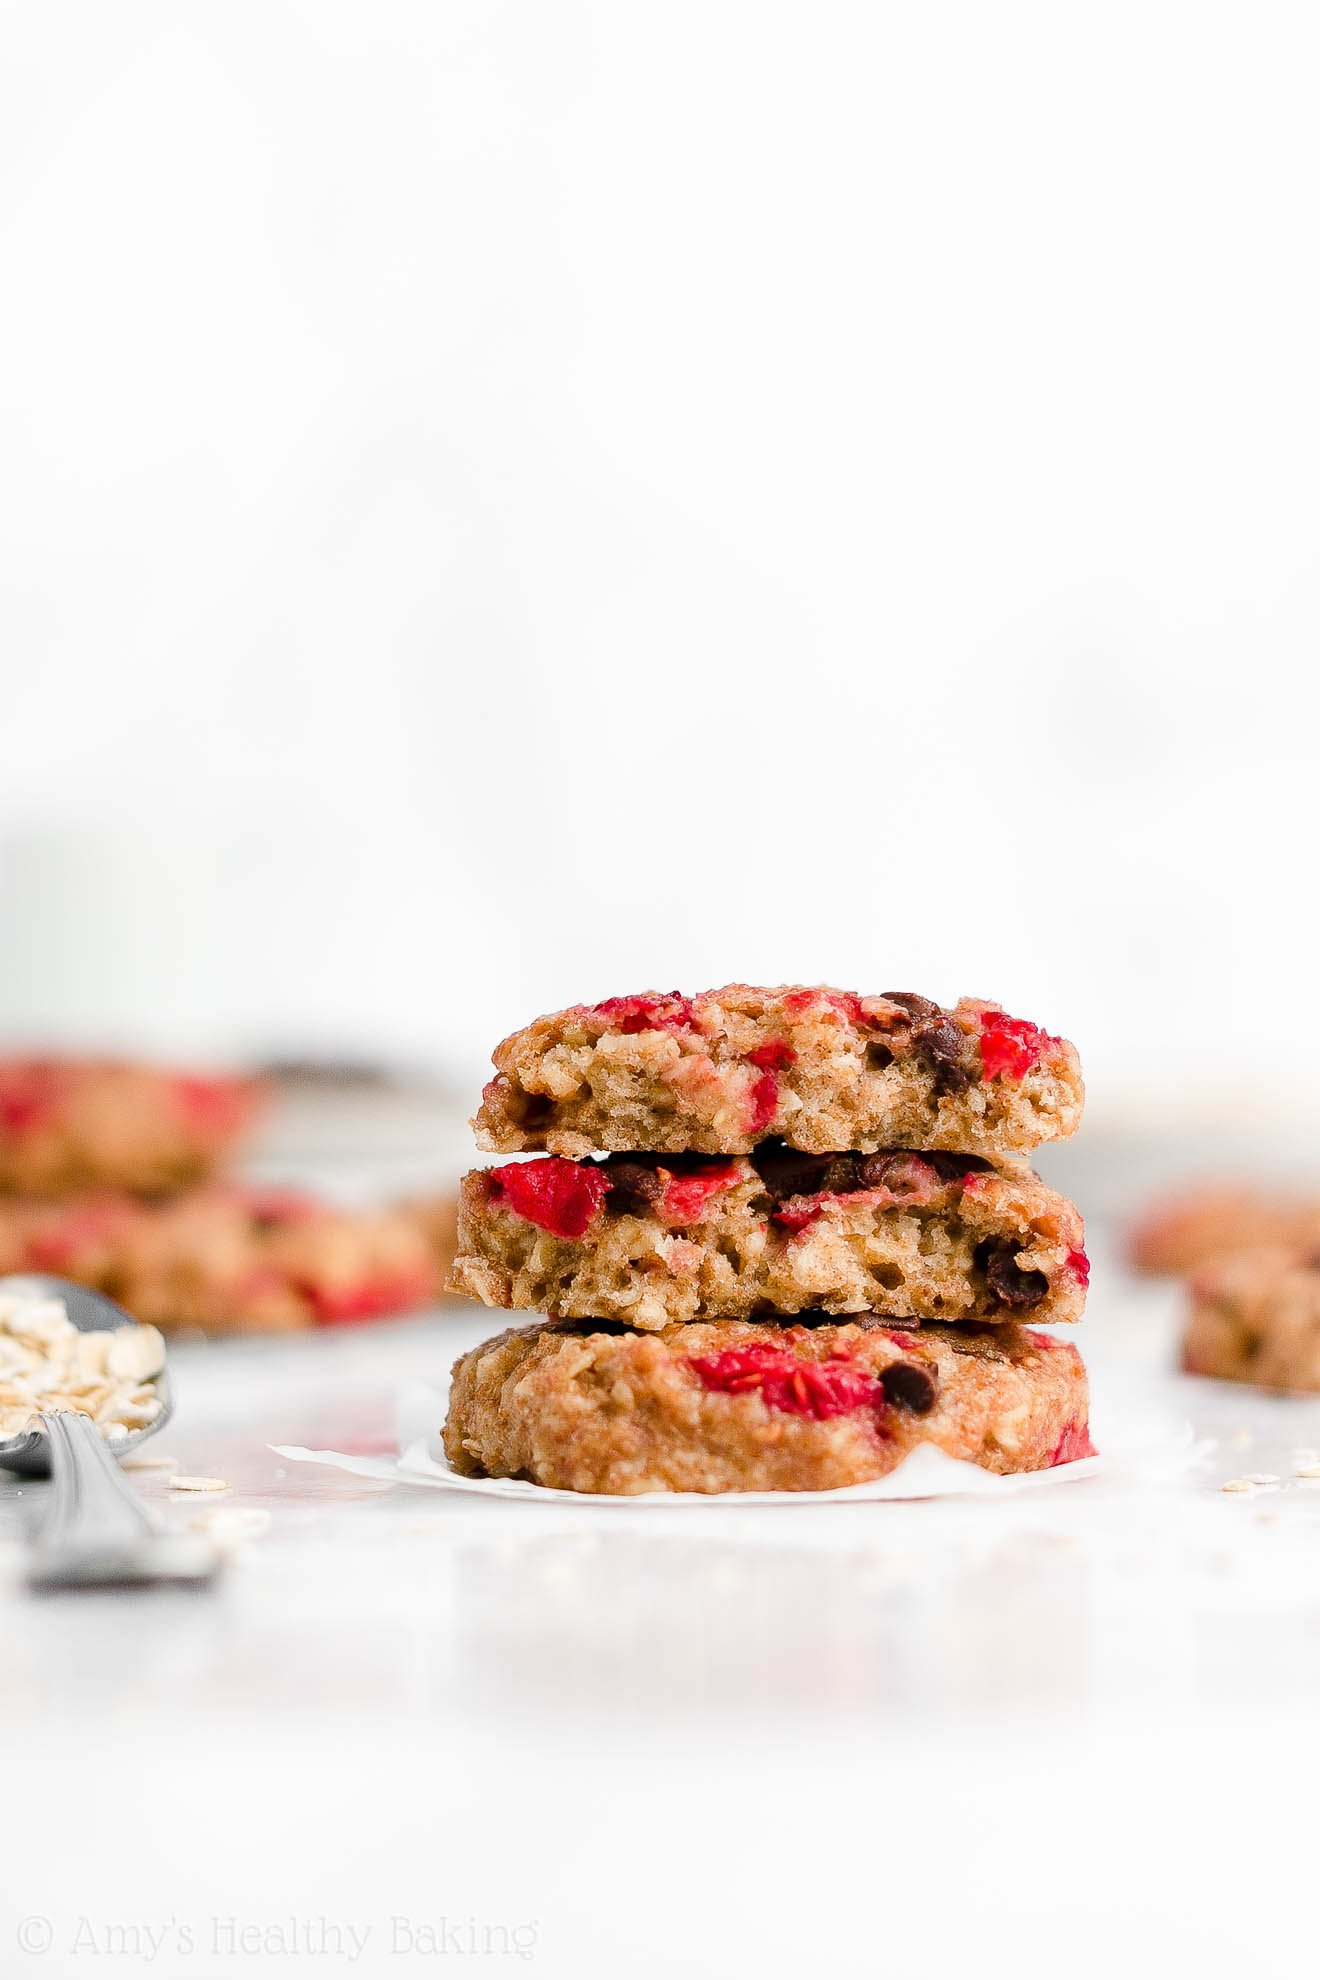 Easy Healthy Homemade Raspberry Chocolate Chip Oatmeal Breakfast Cookies